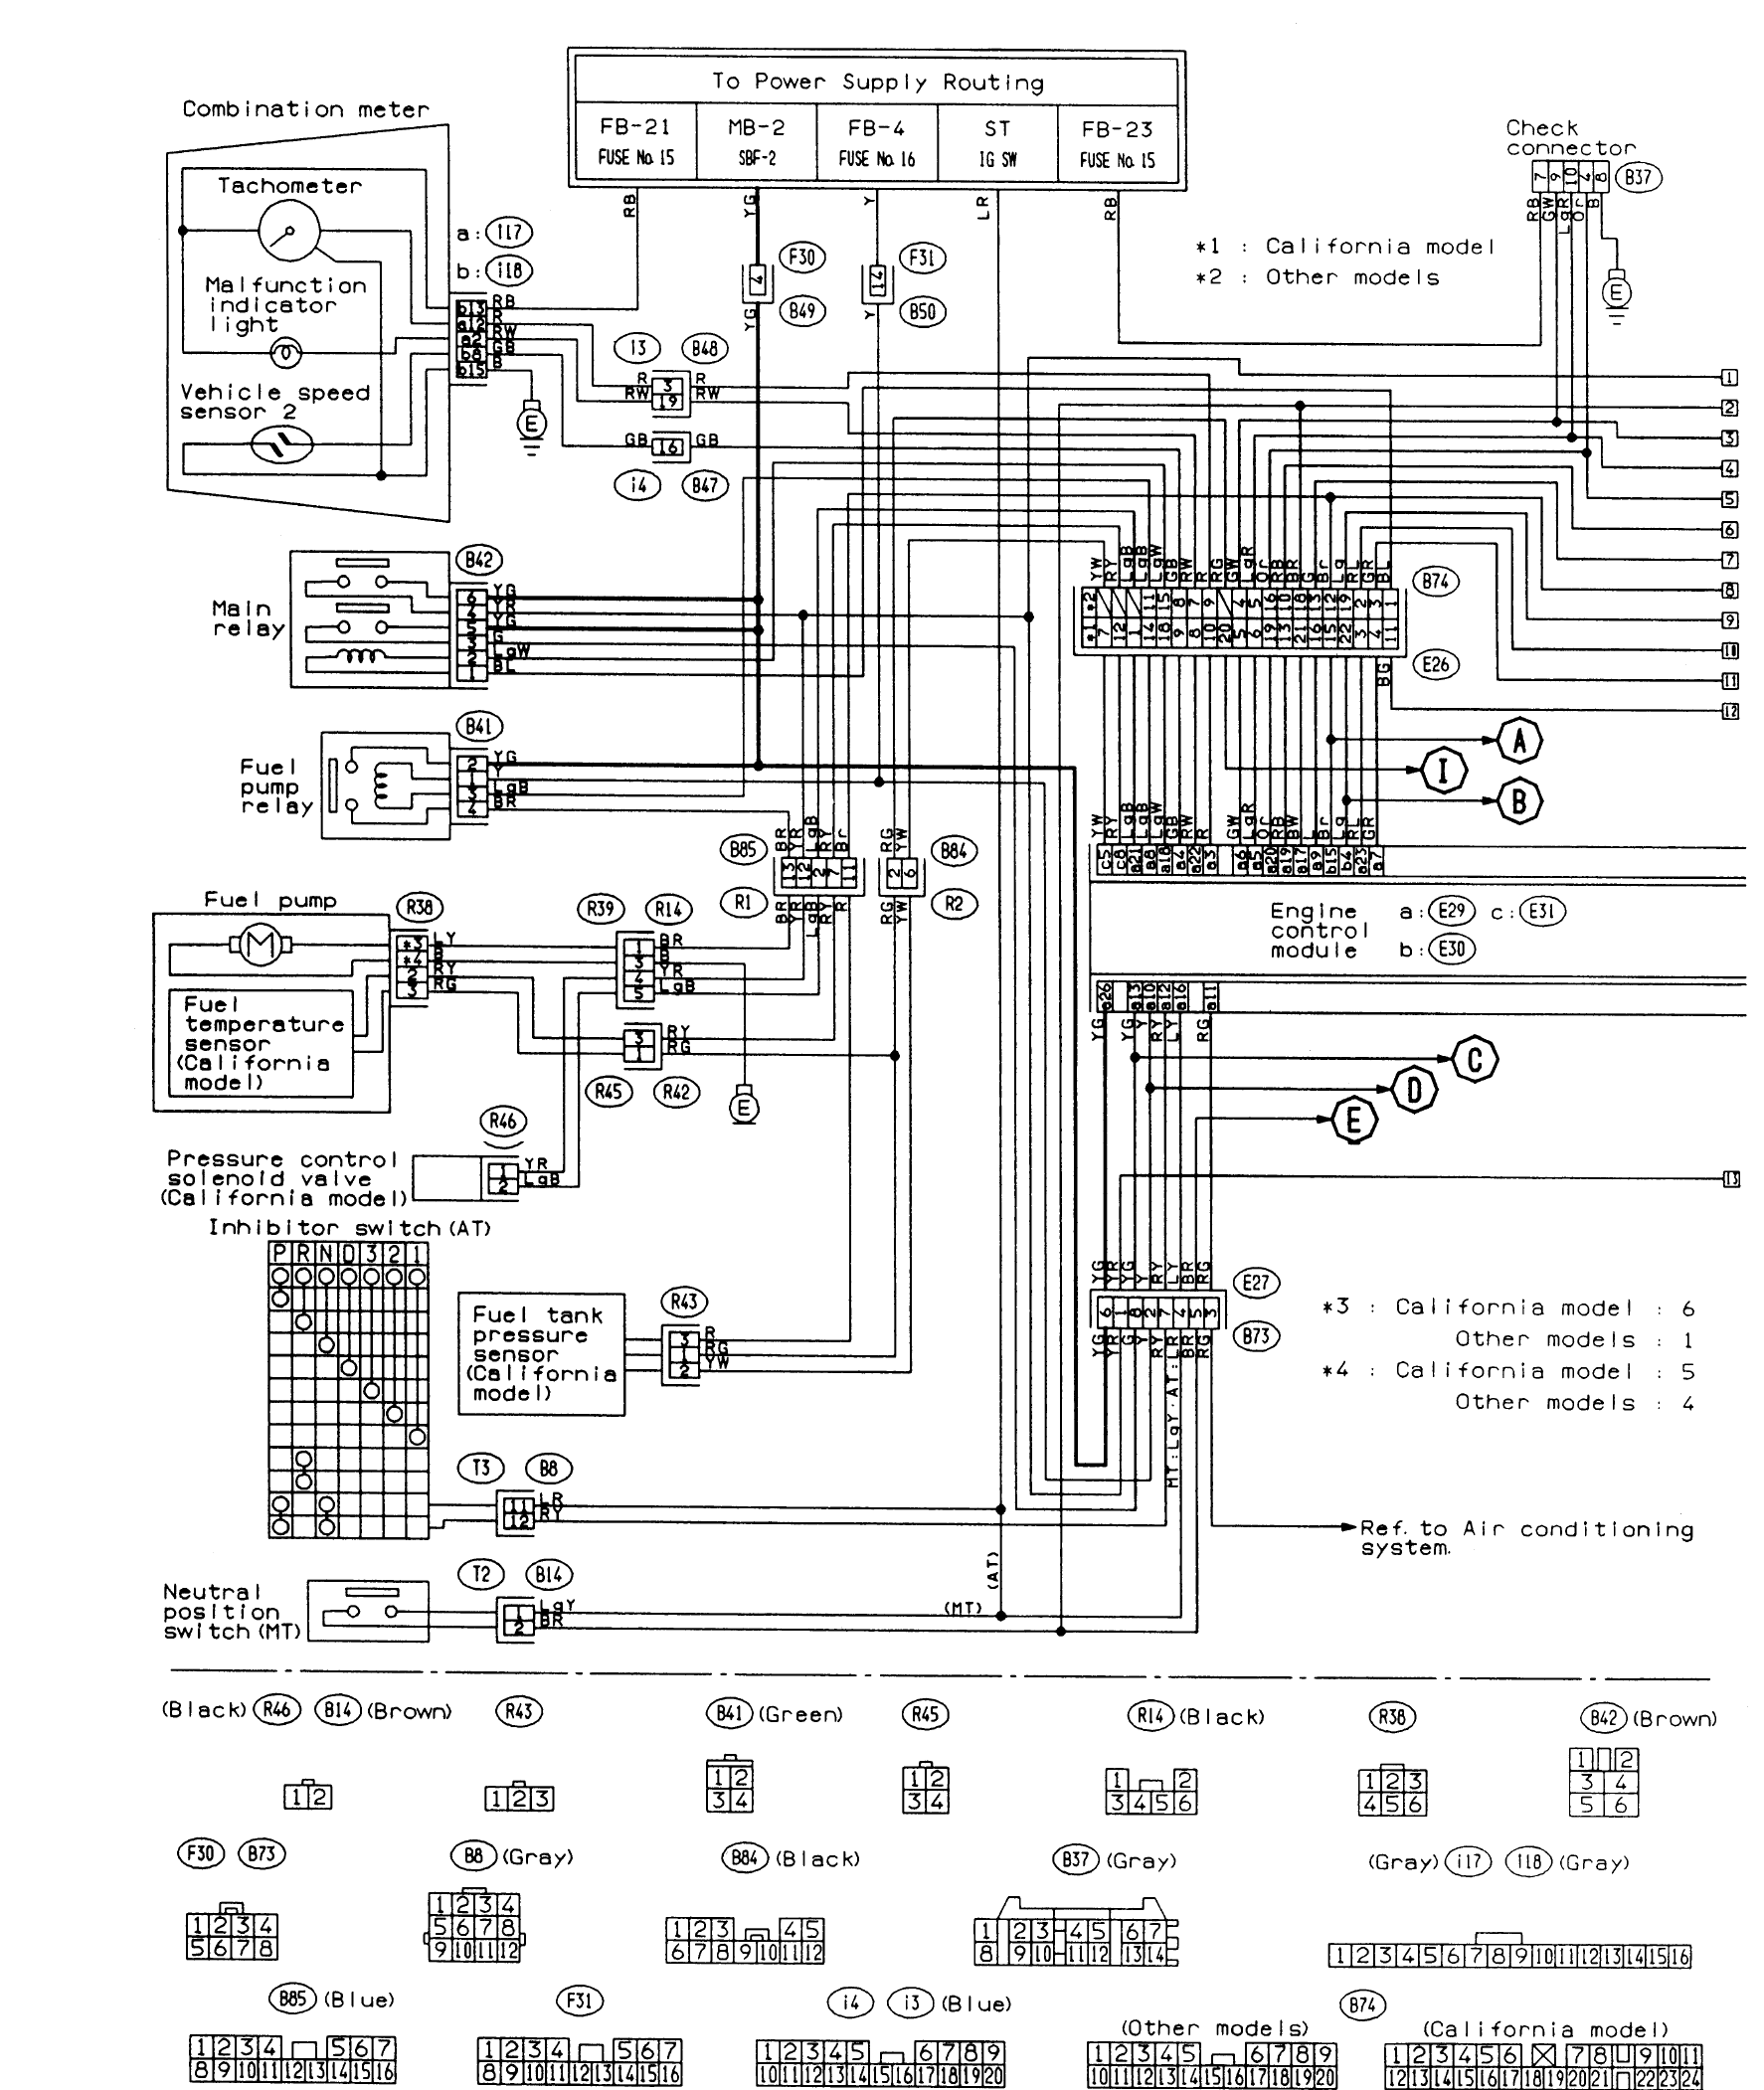 electrical diagram for ac unit in 2009 subaru forester